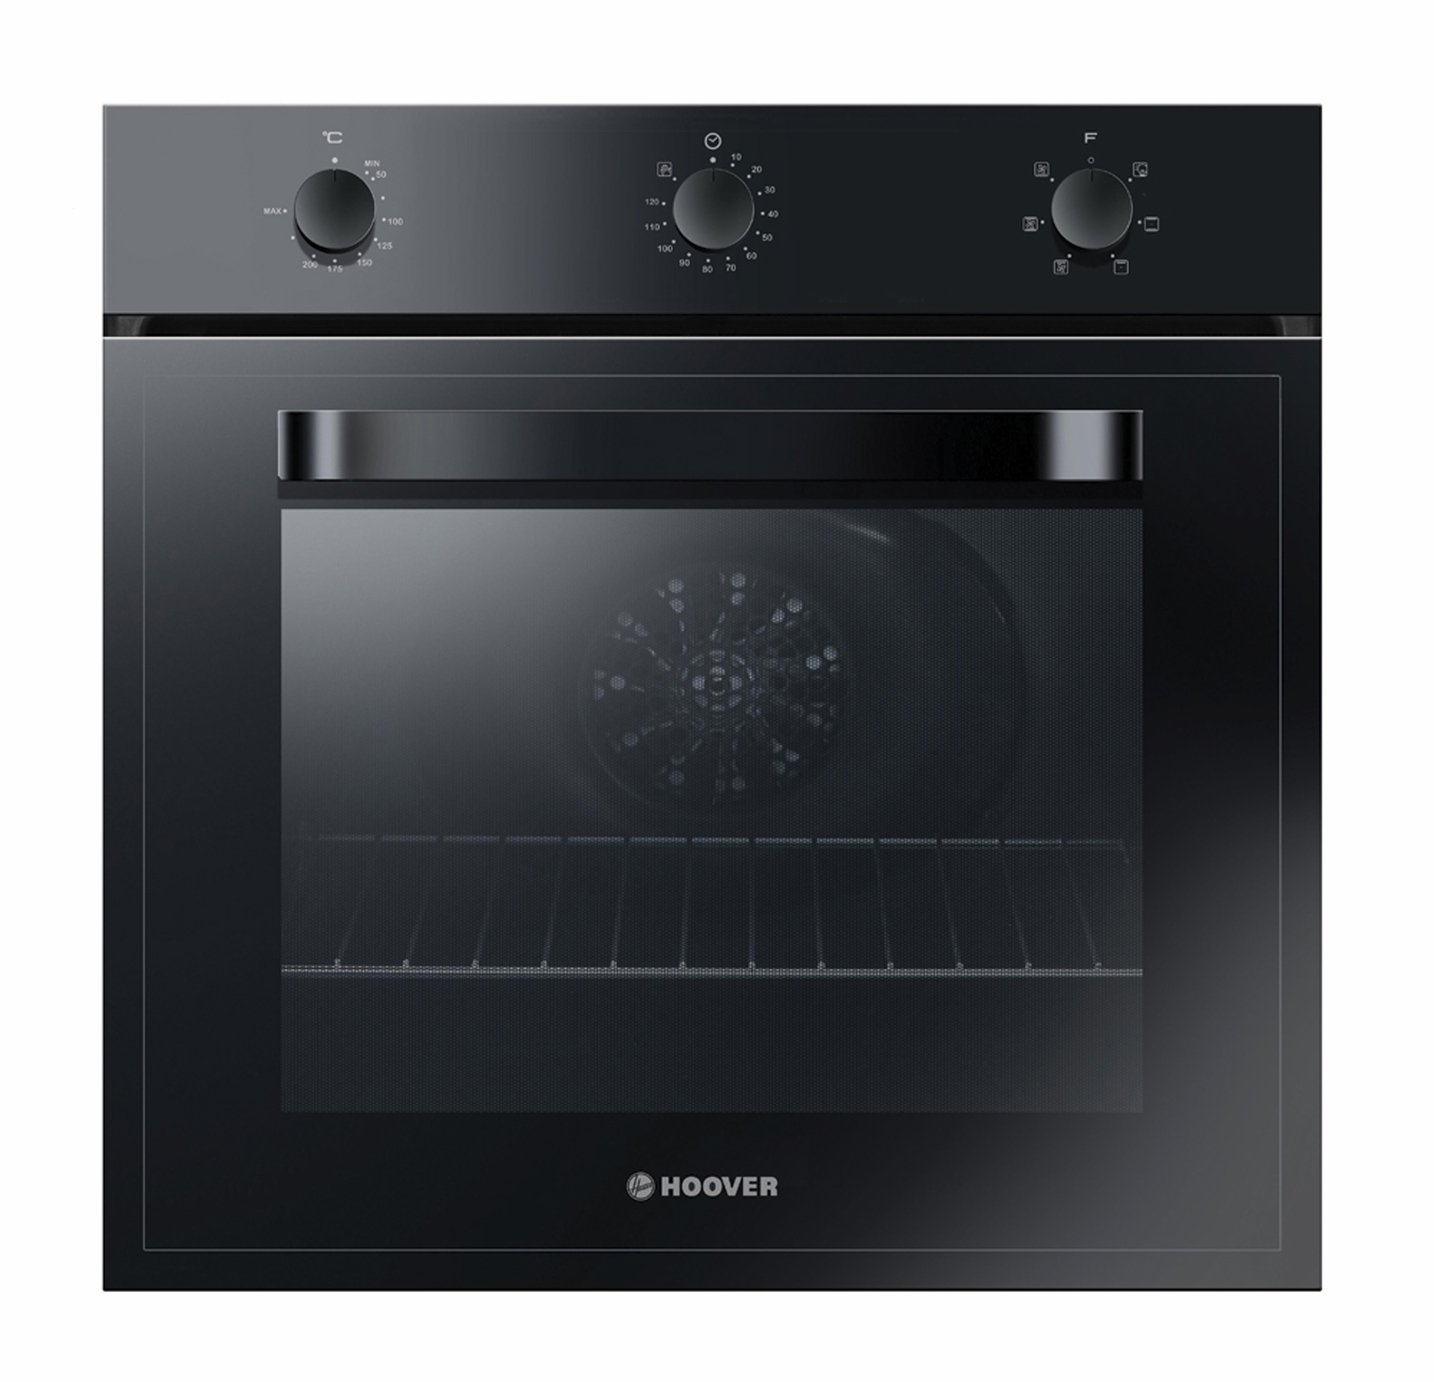 Hoover HOT1151B/E Single Oven - Black